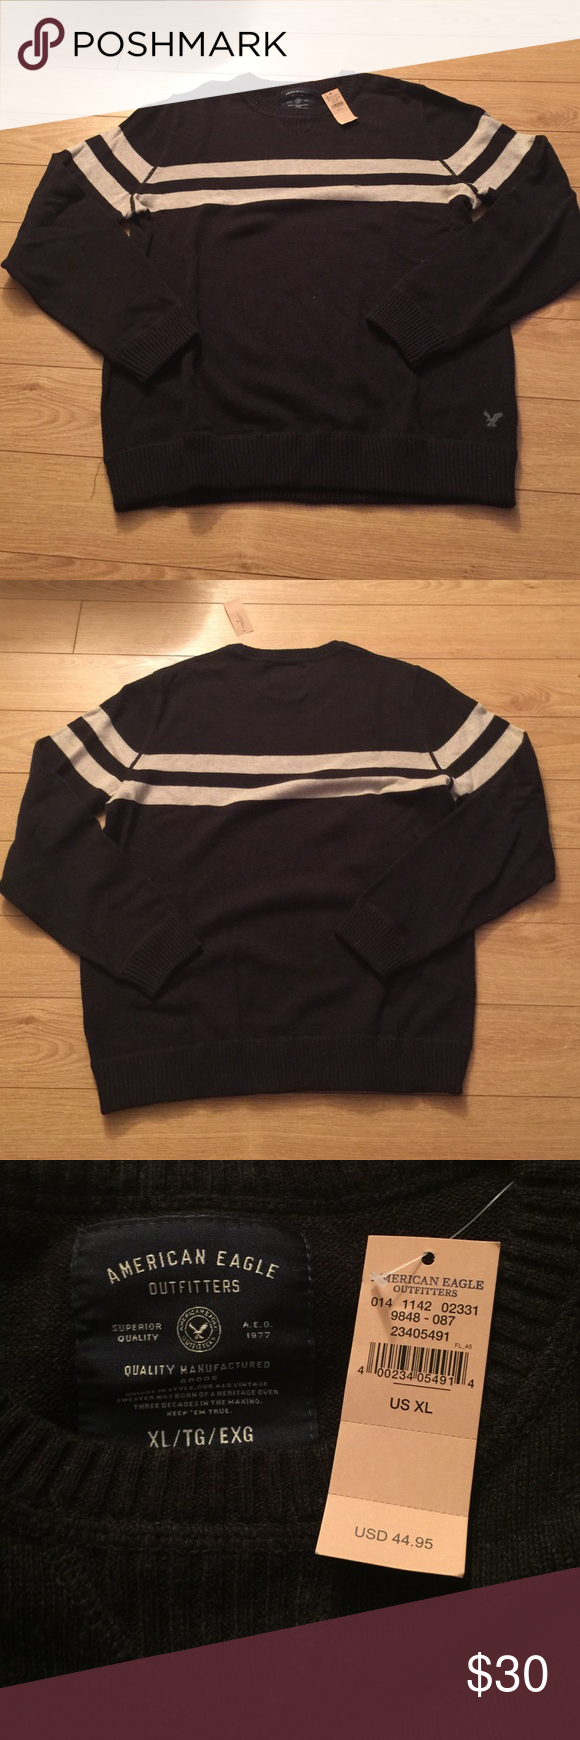 NWT AE Crewneck Sweater Charcoal gray with light gray stripes Crewneck sweater. Never been worn (NWT). XL, 100% Cotton. American Eagle Outfitters Sweaters Crewneck